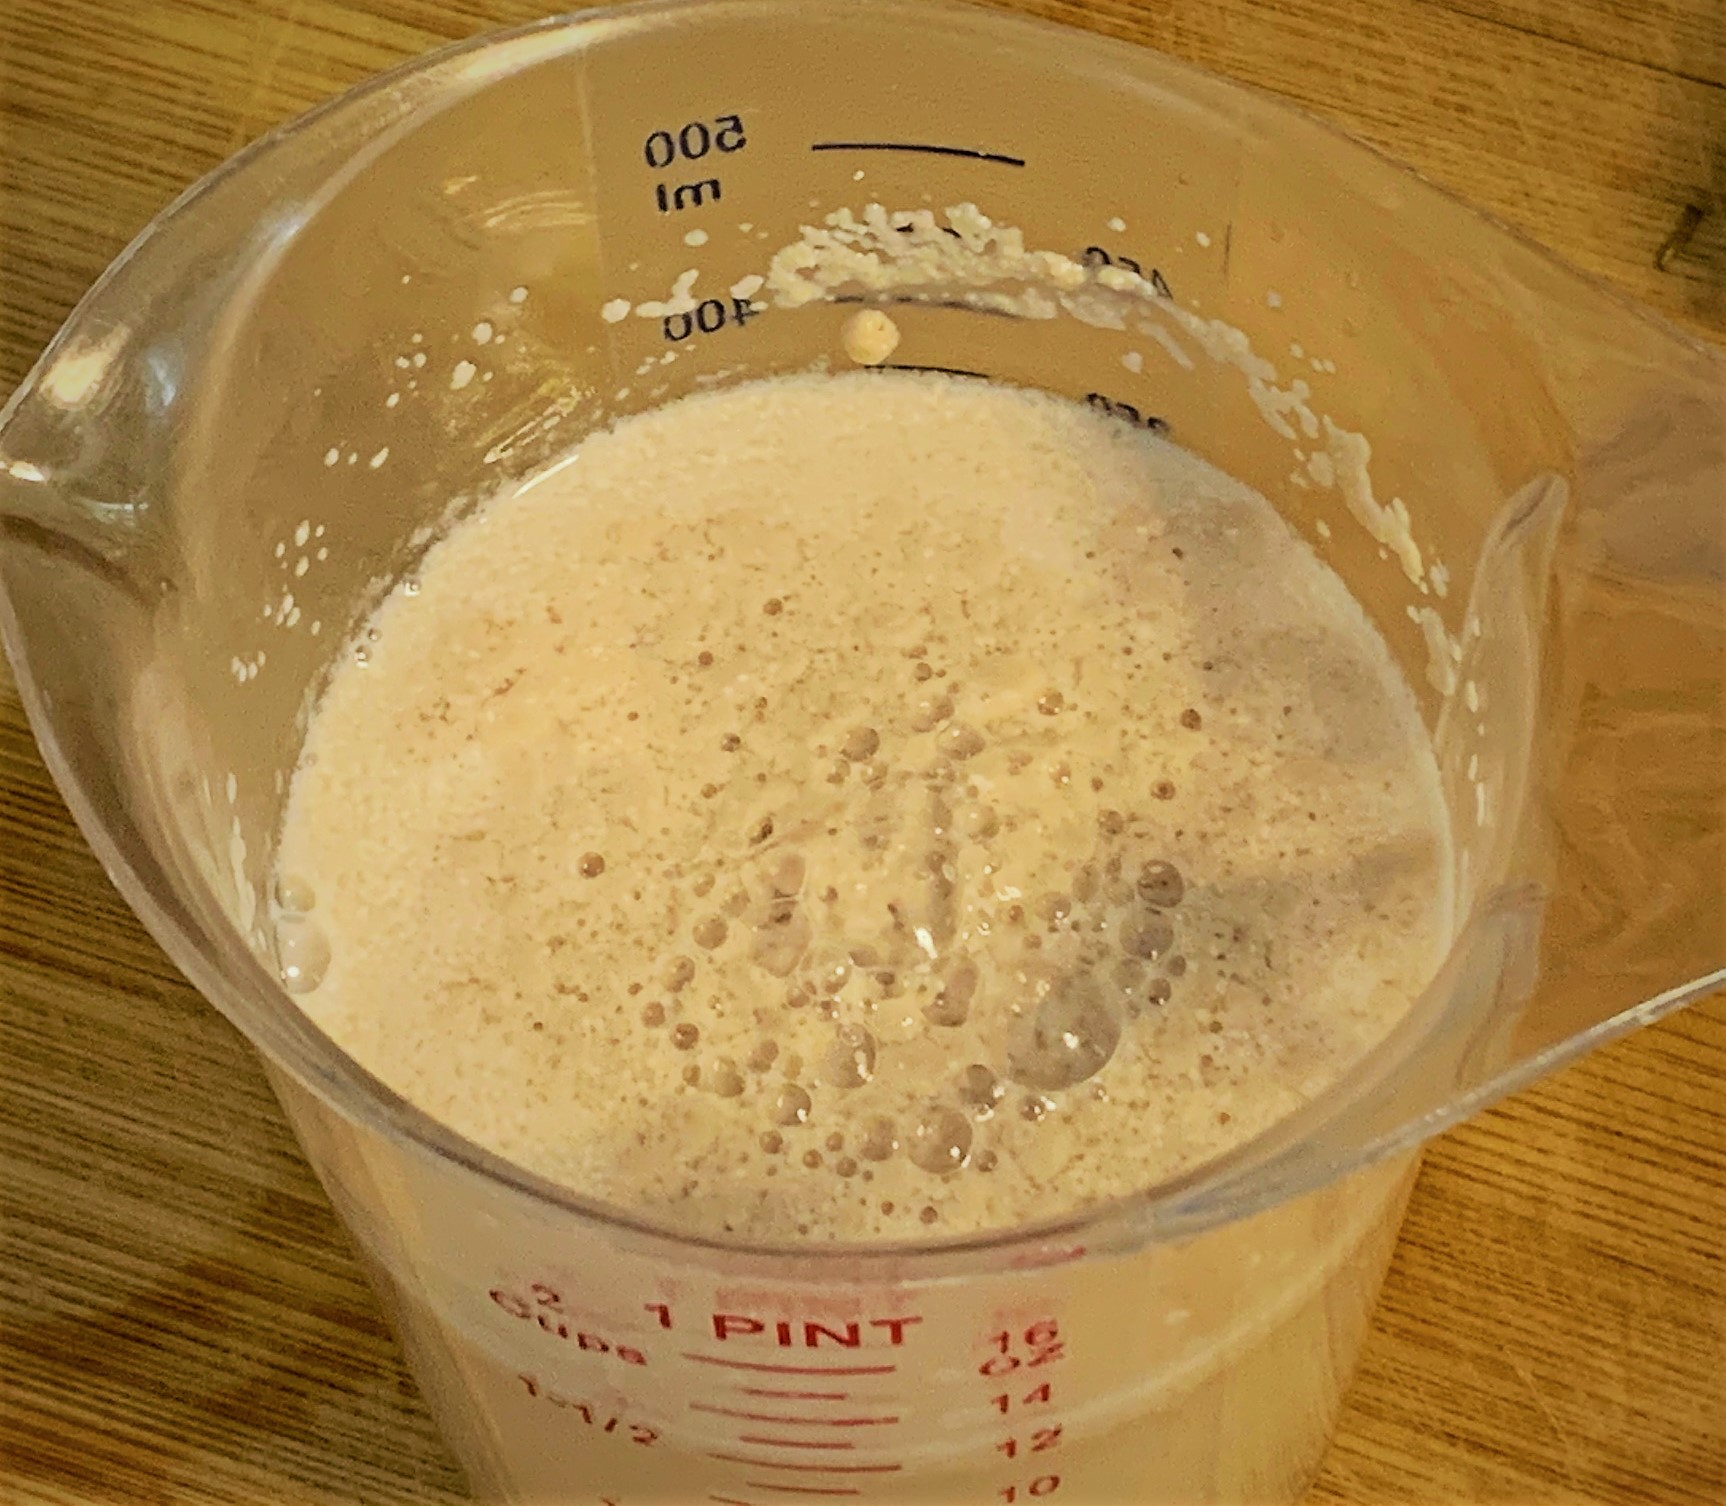 Our Yeast blooming with the Warm Water and Sugar